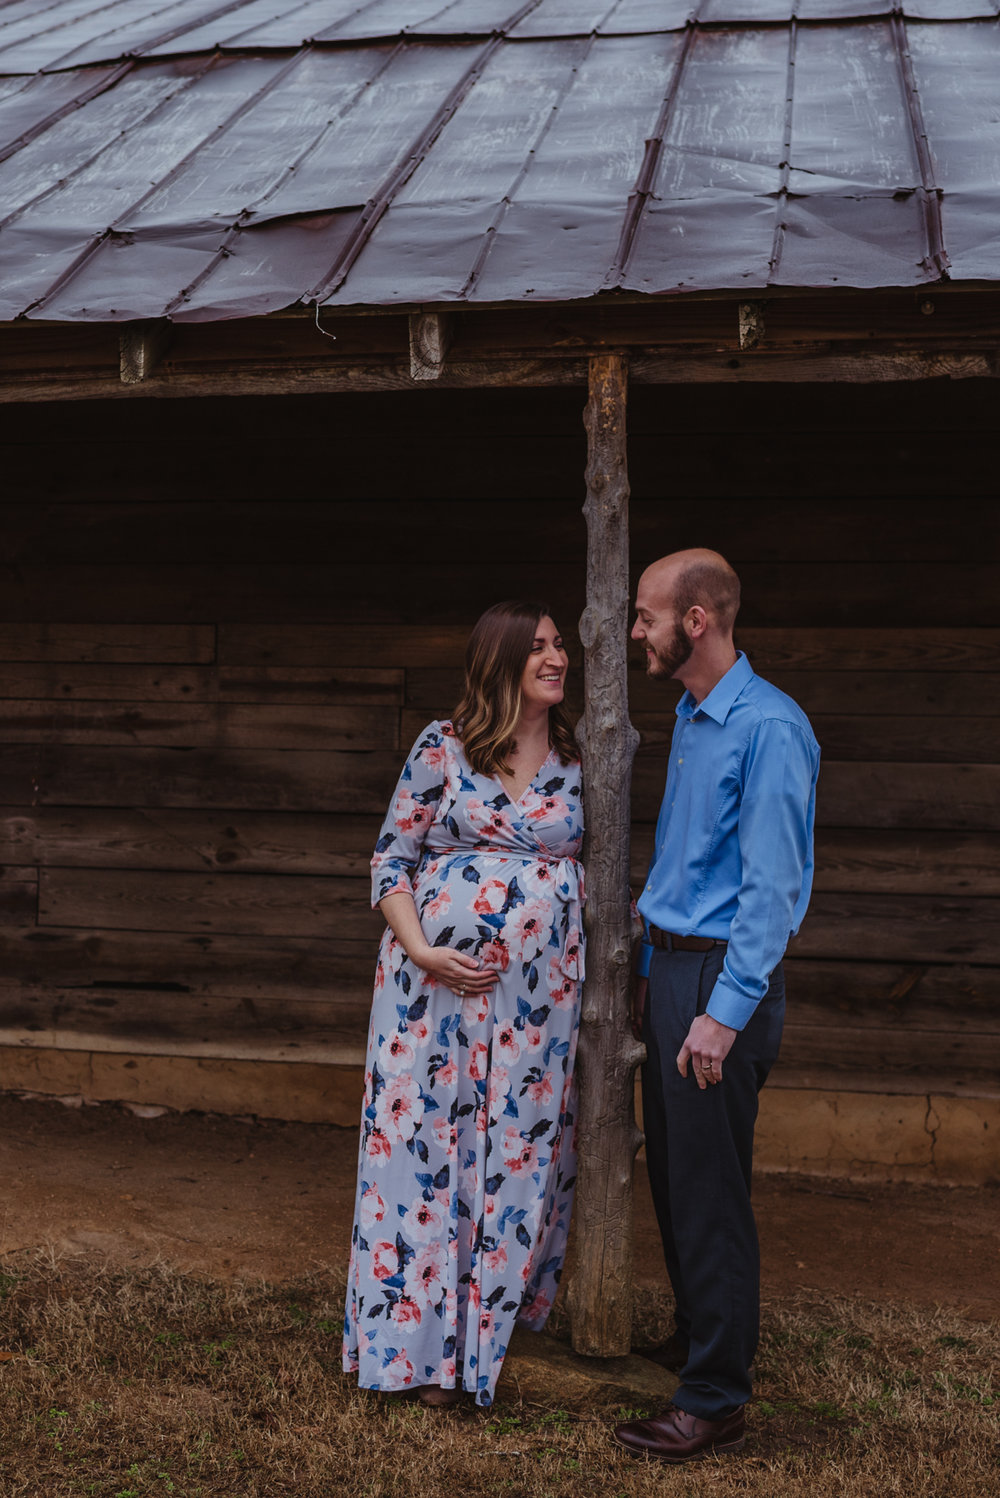 The parents to be laugh together under the old barn, picture taken by Rose Trail Images at Joyner Park in Wake Forest, NC.